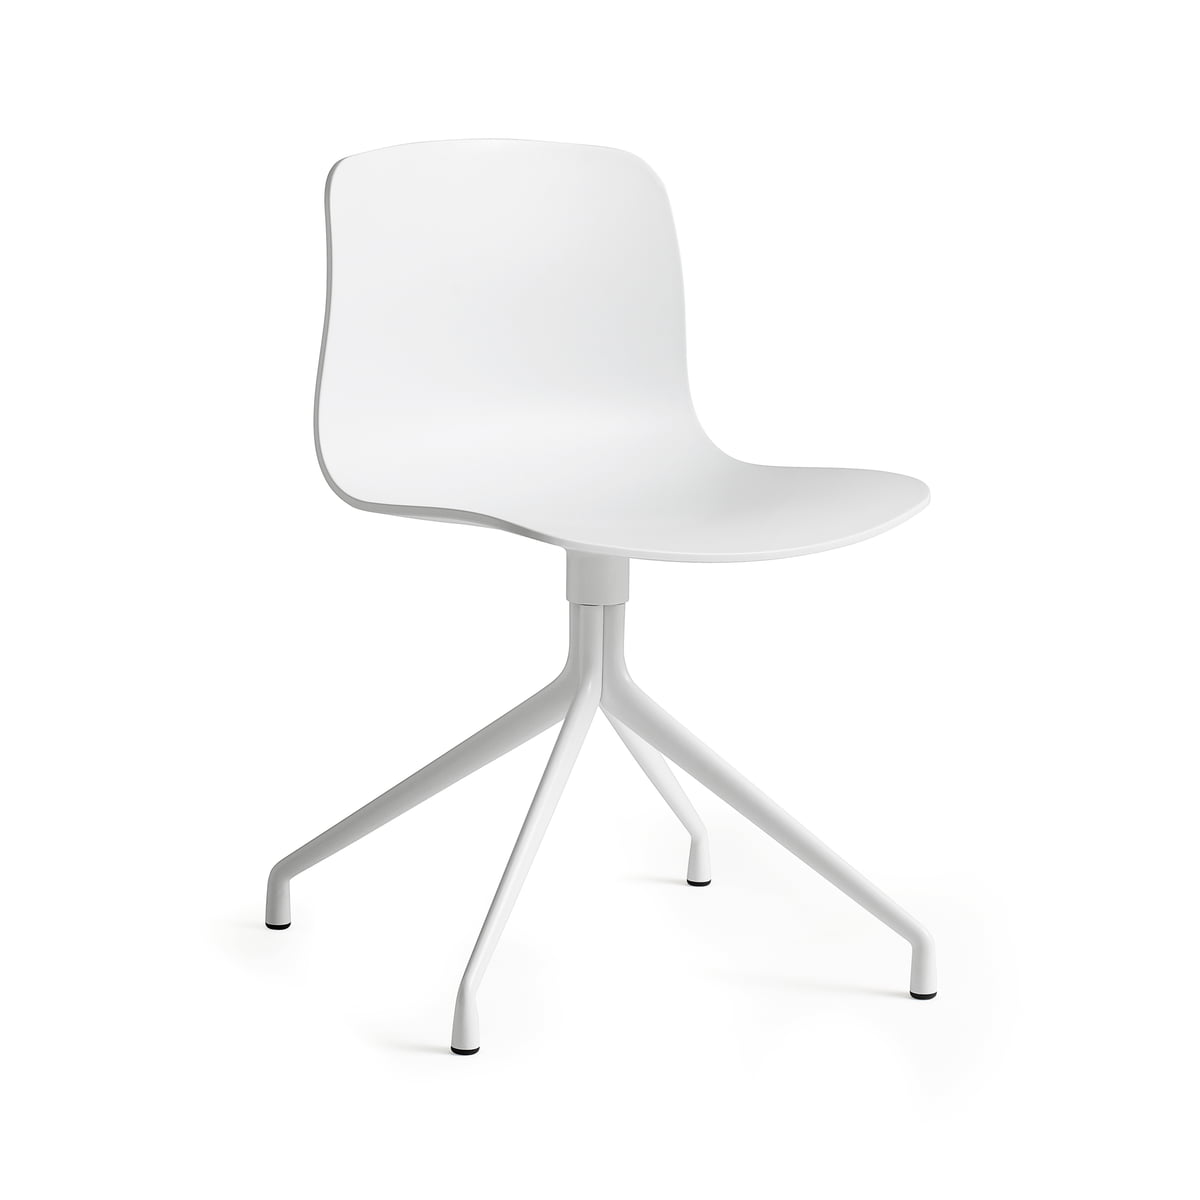 Hay About a chair aac 10, aluminium hvid hvid, filtglider